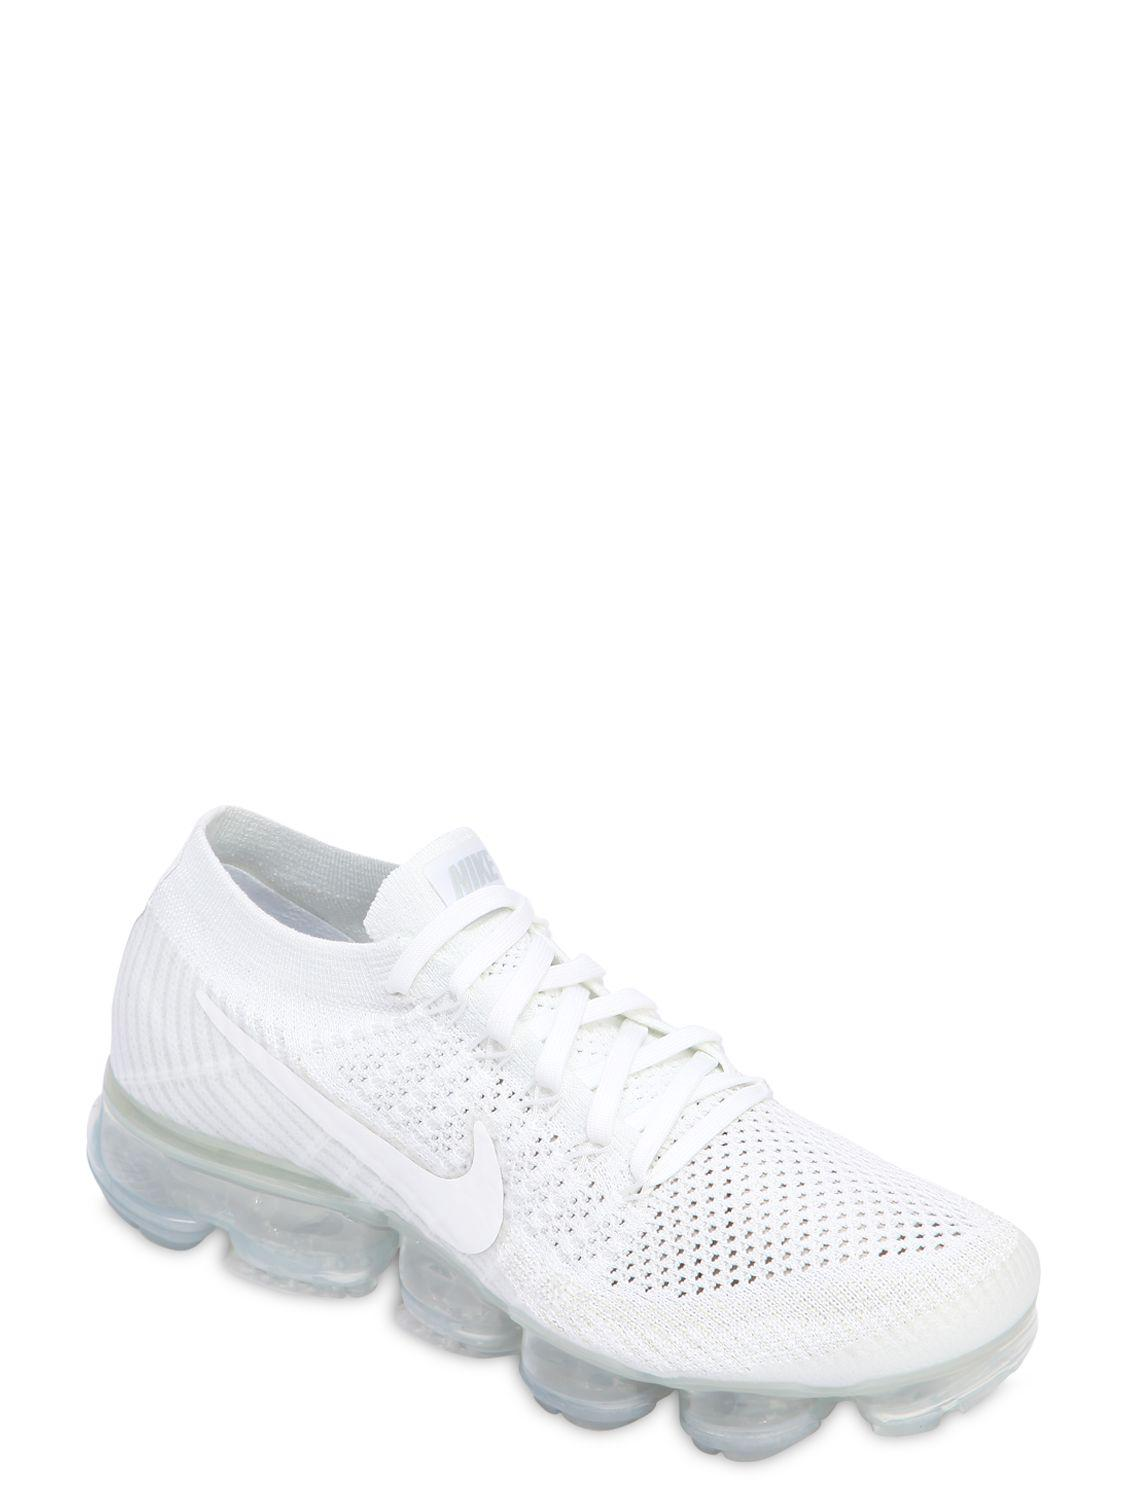 Nike Air Vapormax Flyknit Sneakers in White